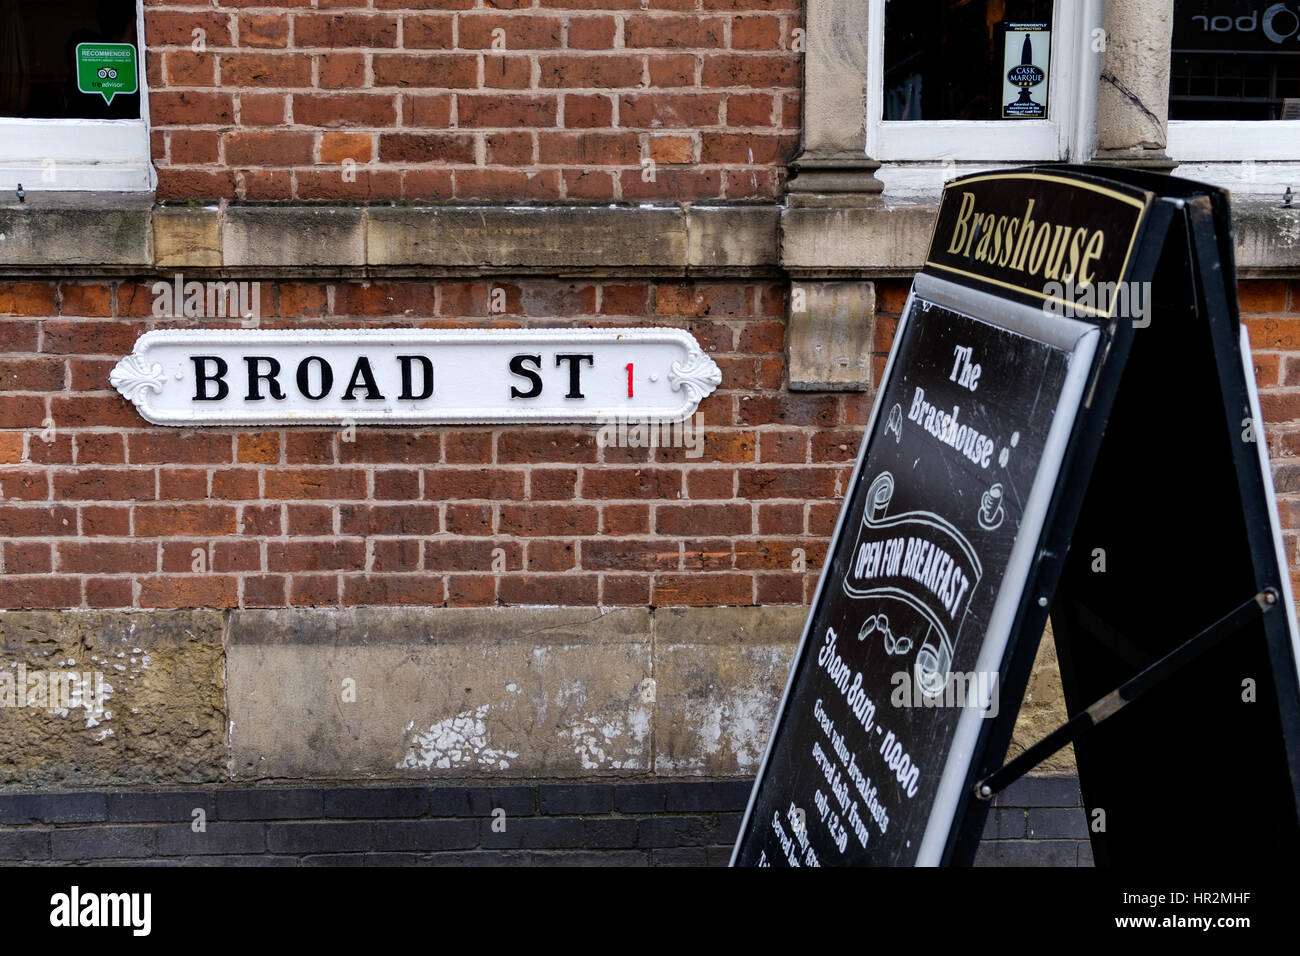 Driving Map Of France With Distances%0A A old fashioned street sign on Broad Street Birmingham  Stock Image